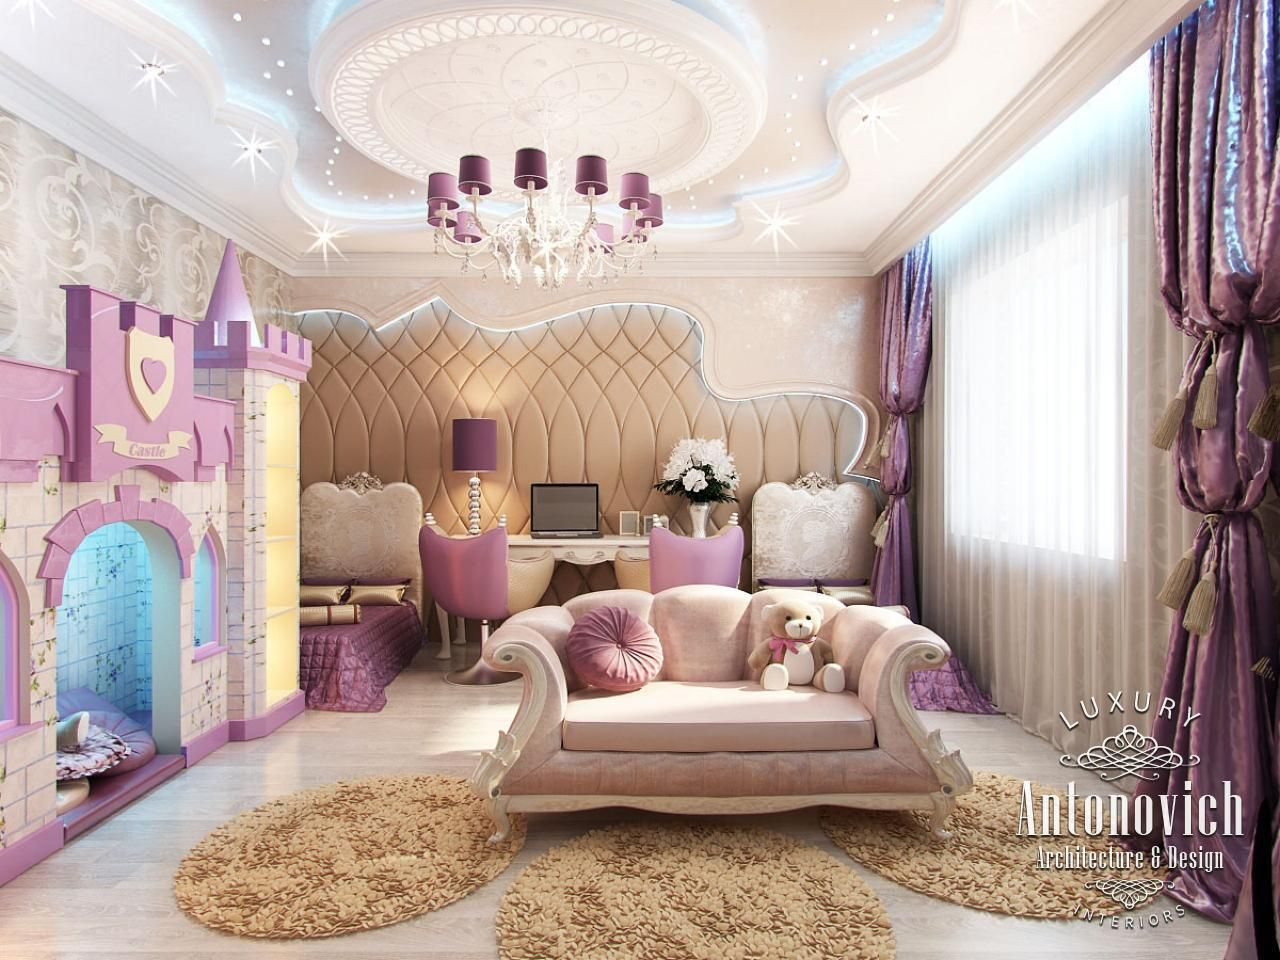 Girly Home Decor Part 15 Home Decor Dubai Interior Design Ideas